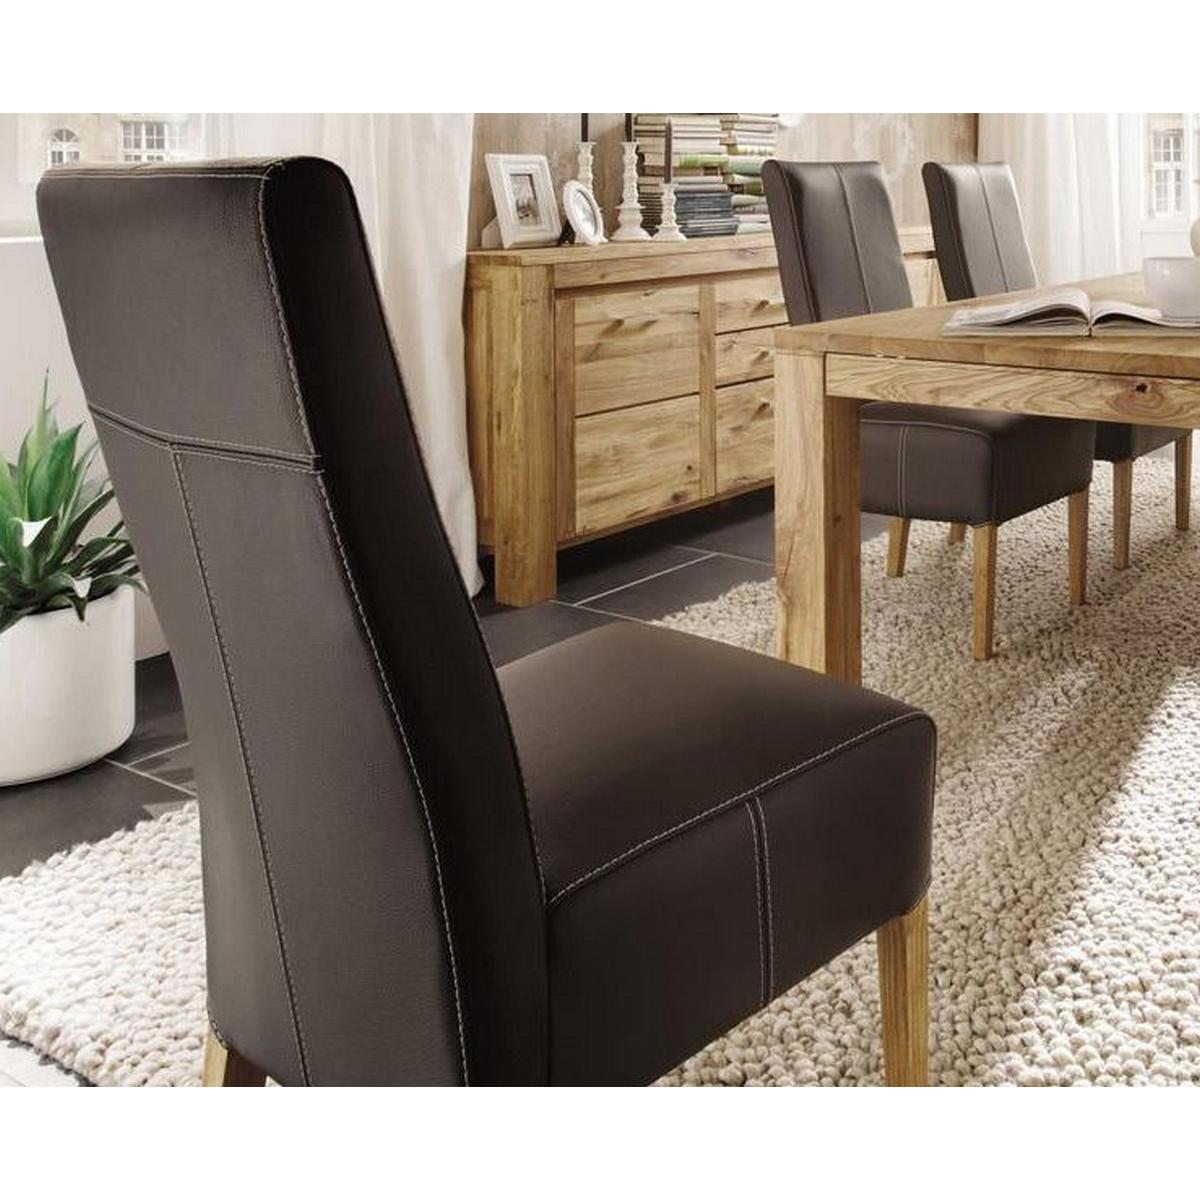 echtleder stuhl polsterstuhl lederst hle braun caffe bei. Black Bedroom Furniture Sets. Home Design Ideas